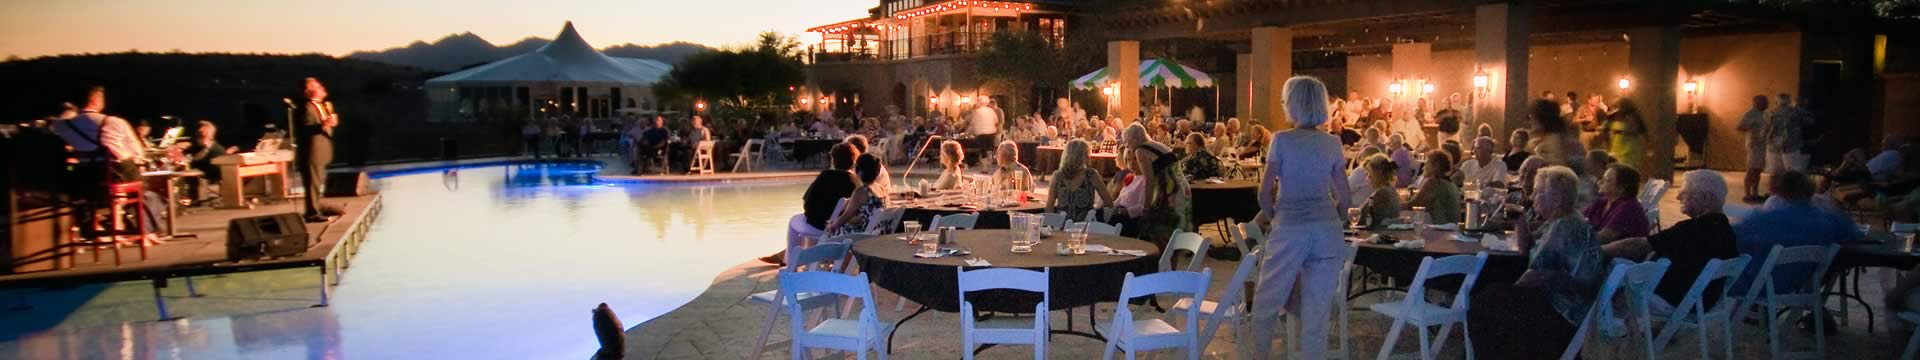 lake havasu private country clubs